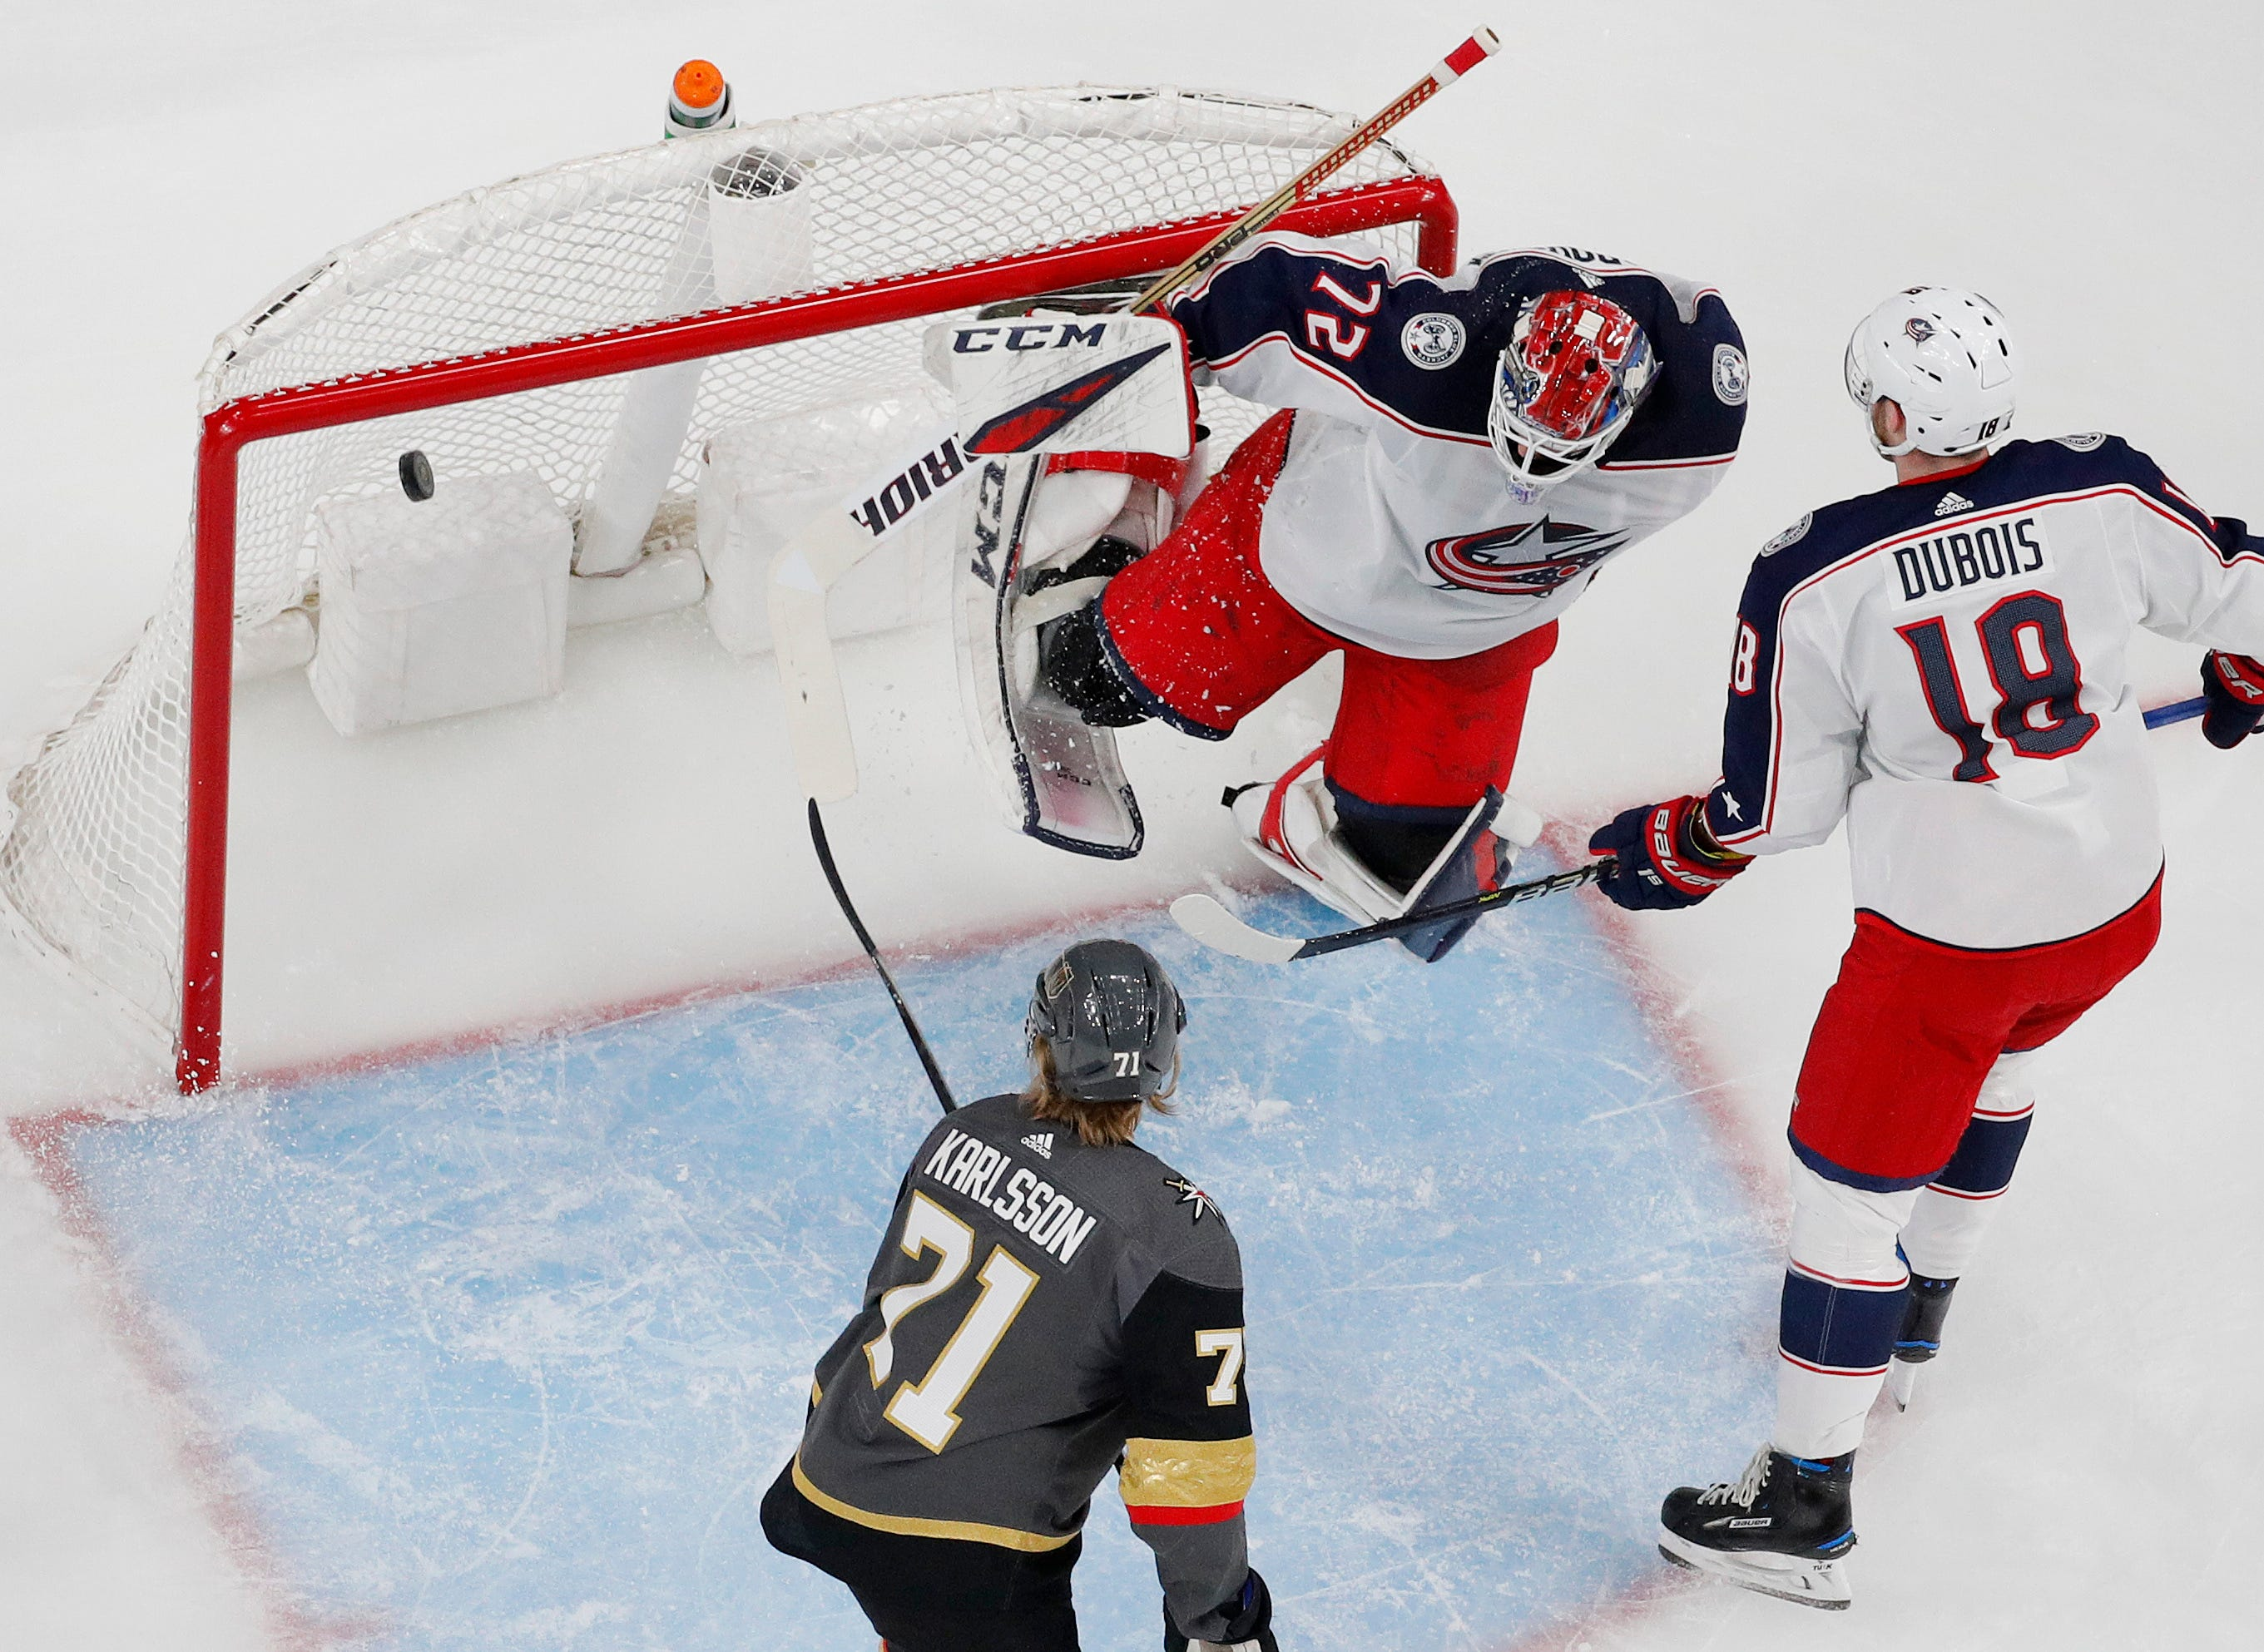 Atkinson scores twice, Blue Jackets beat Golden Knights 4-3